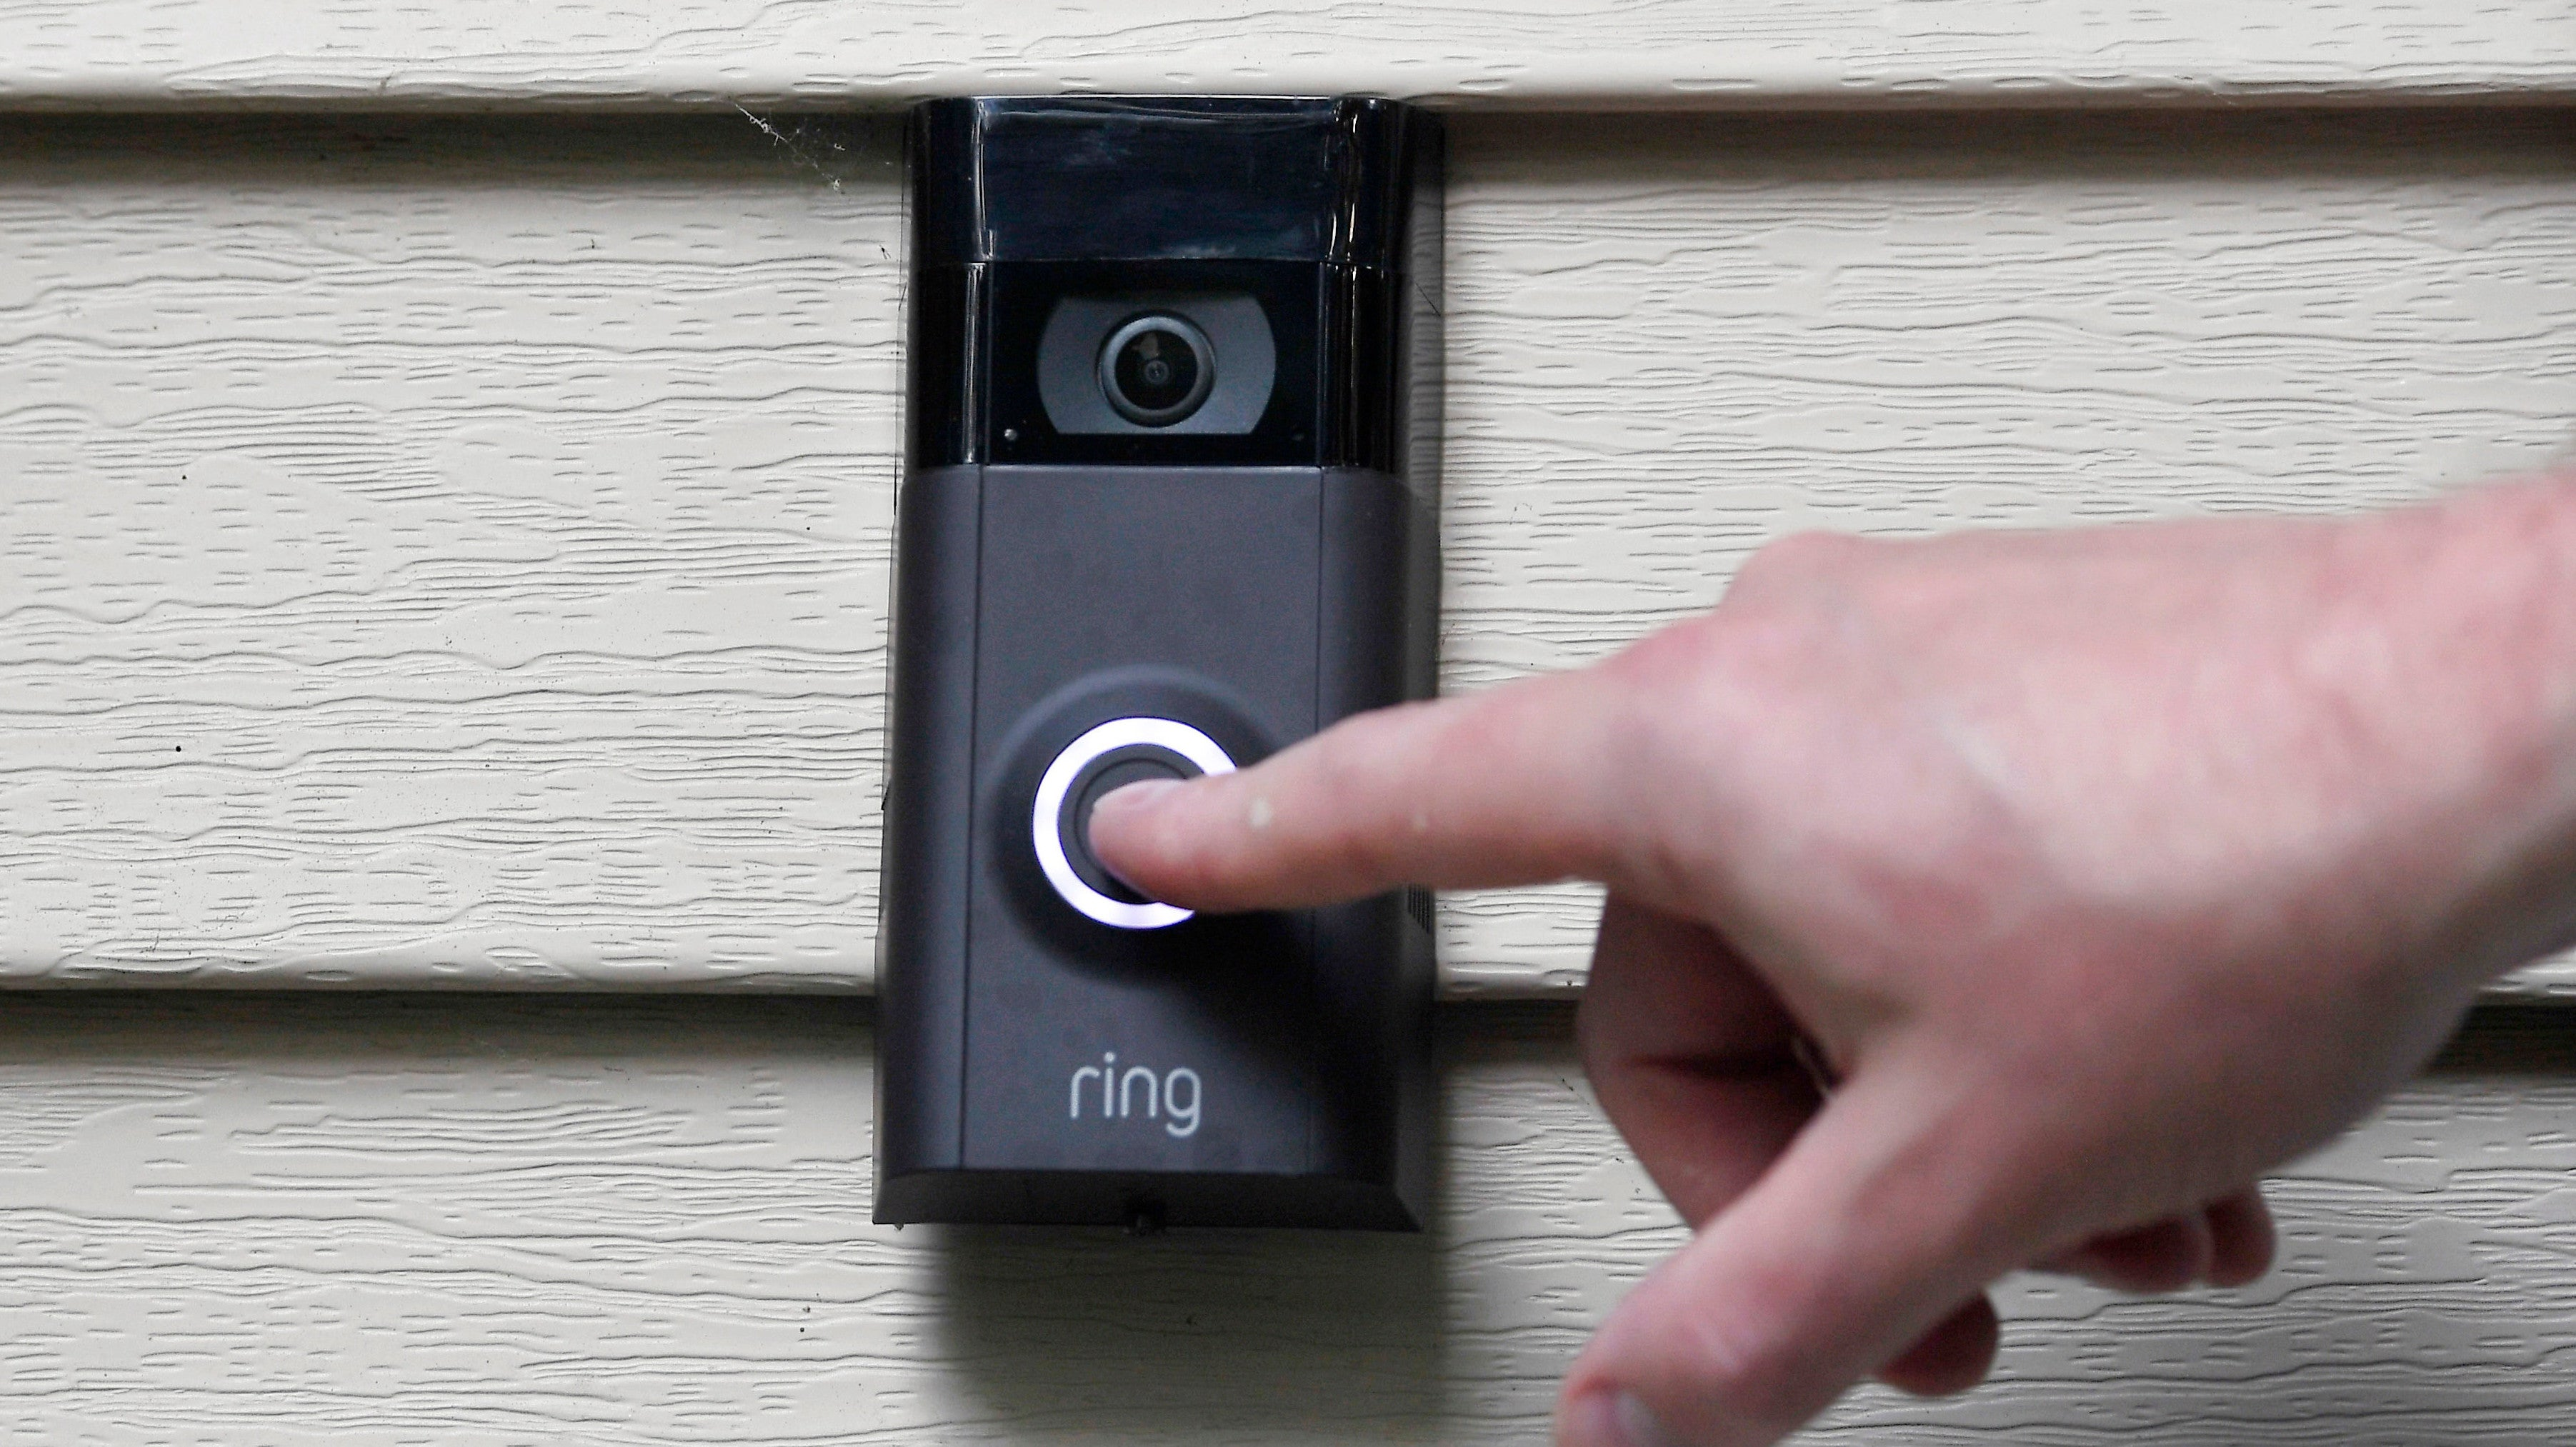 Vulnerability In Ring Doorbells Left The Door Open For Hackers To Open The Door